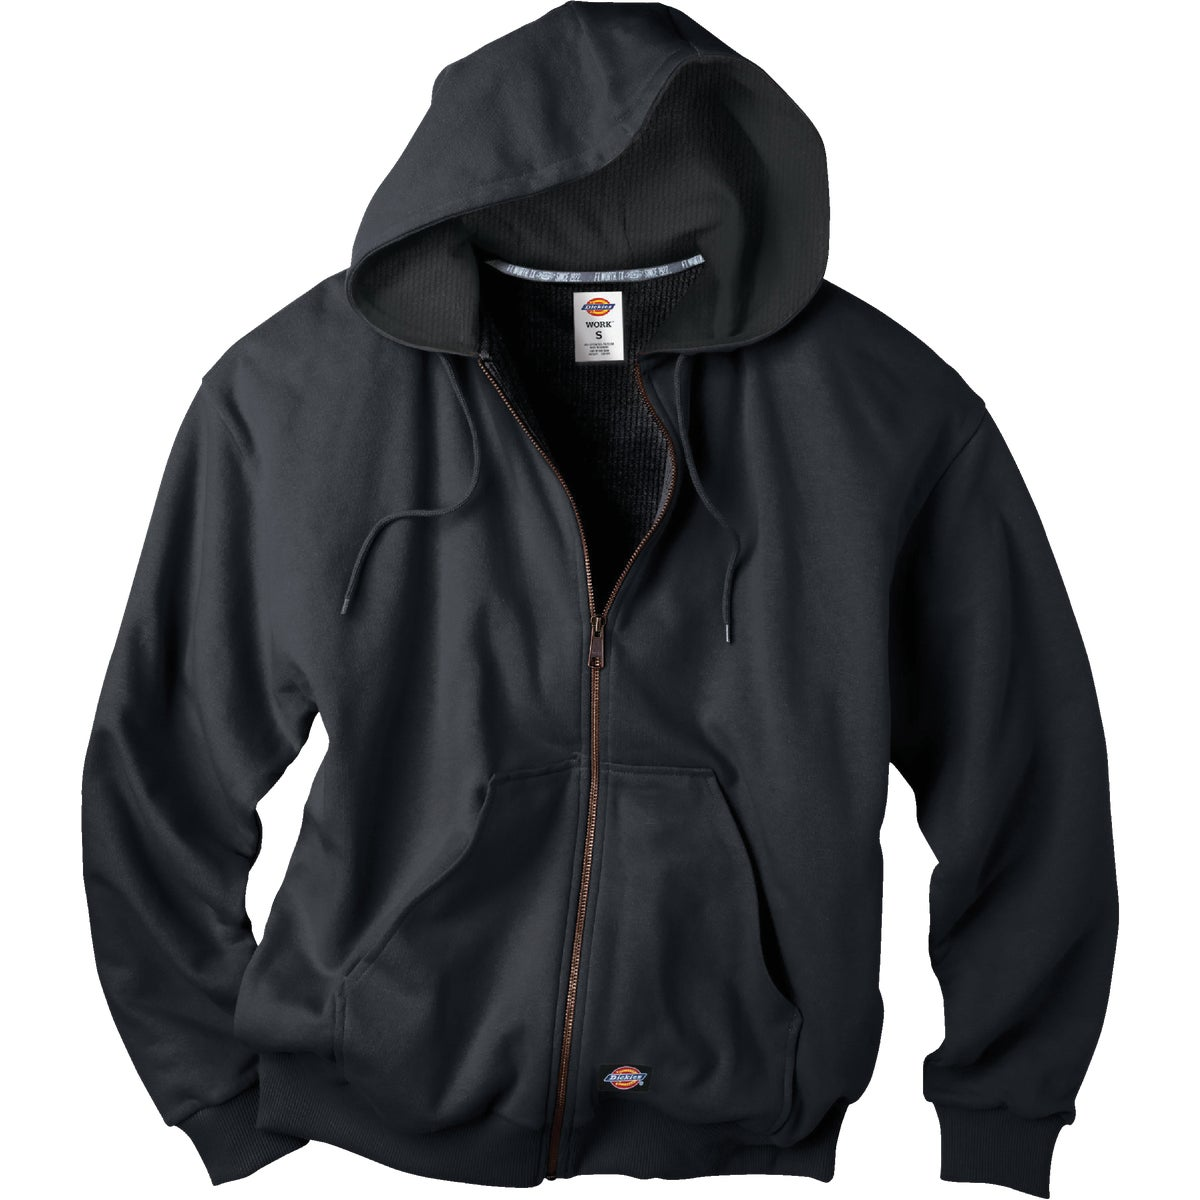 Williamson Dickie Mfg Co LRG BLK HOOD JACKET TW6303BK-LG